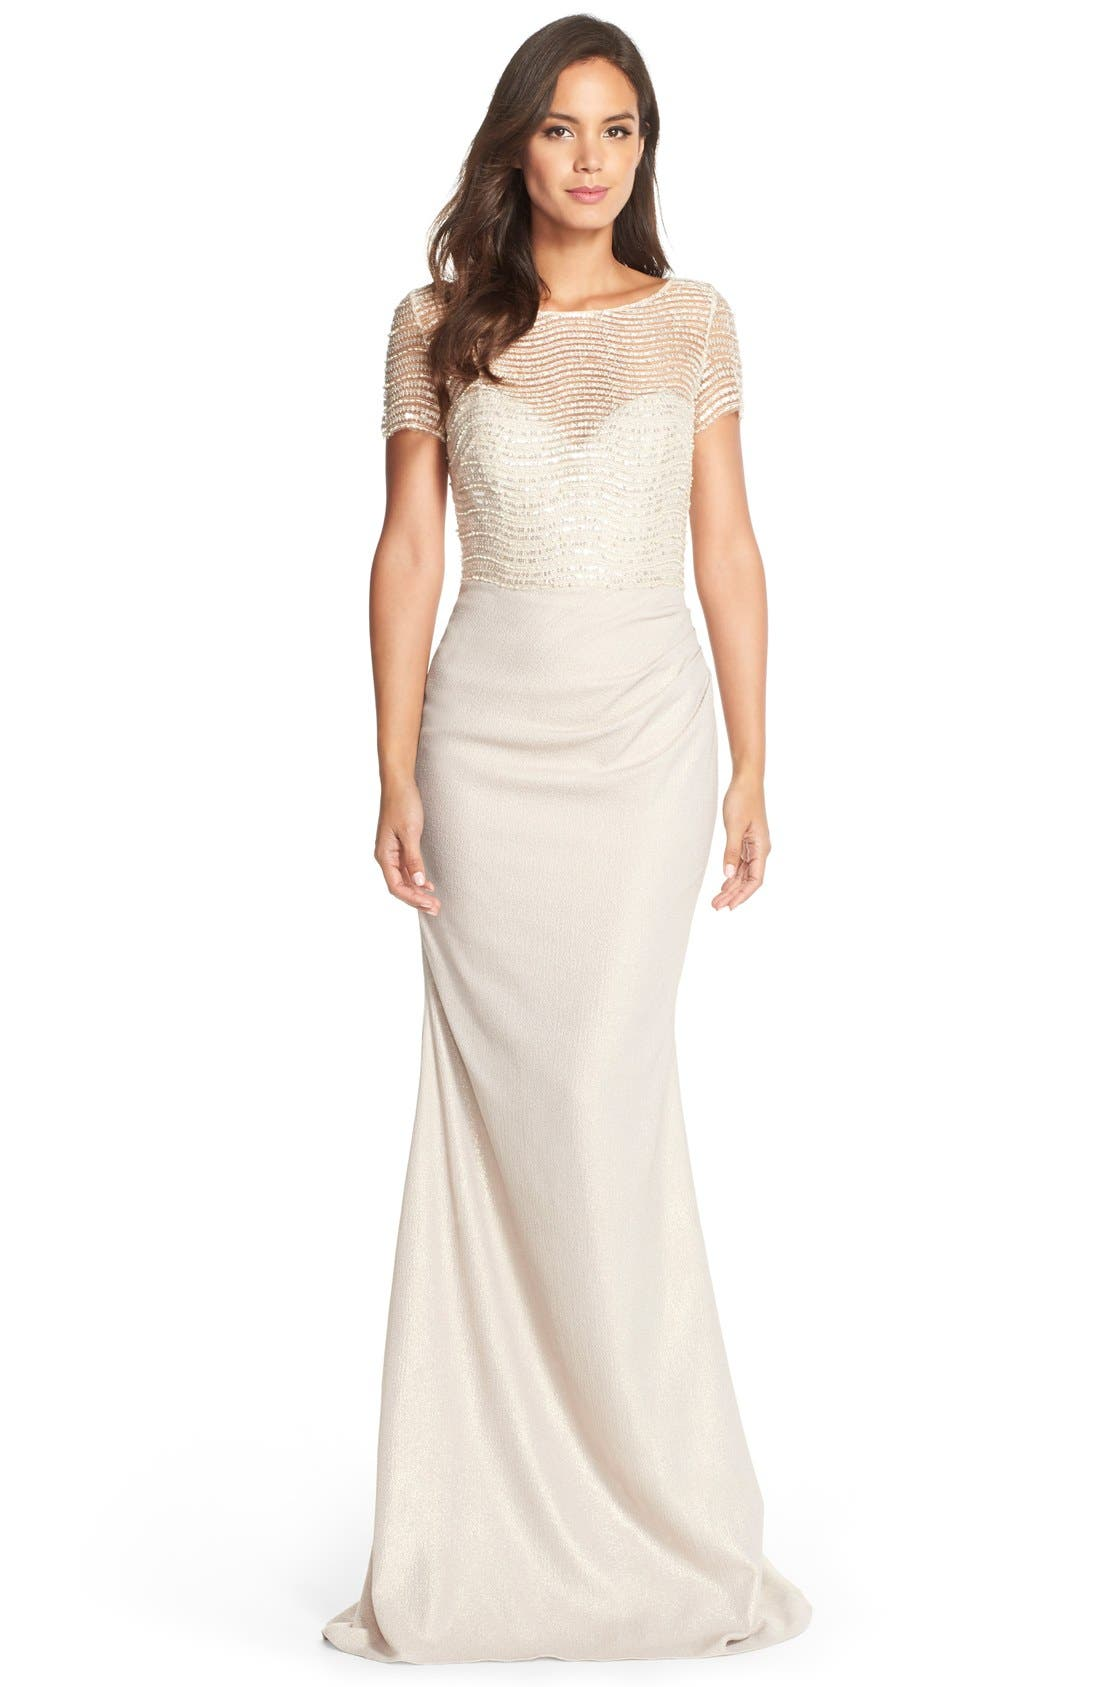 Main Image - Badgley Mischka Embellished Illusion Crepe Gown